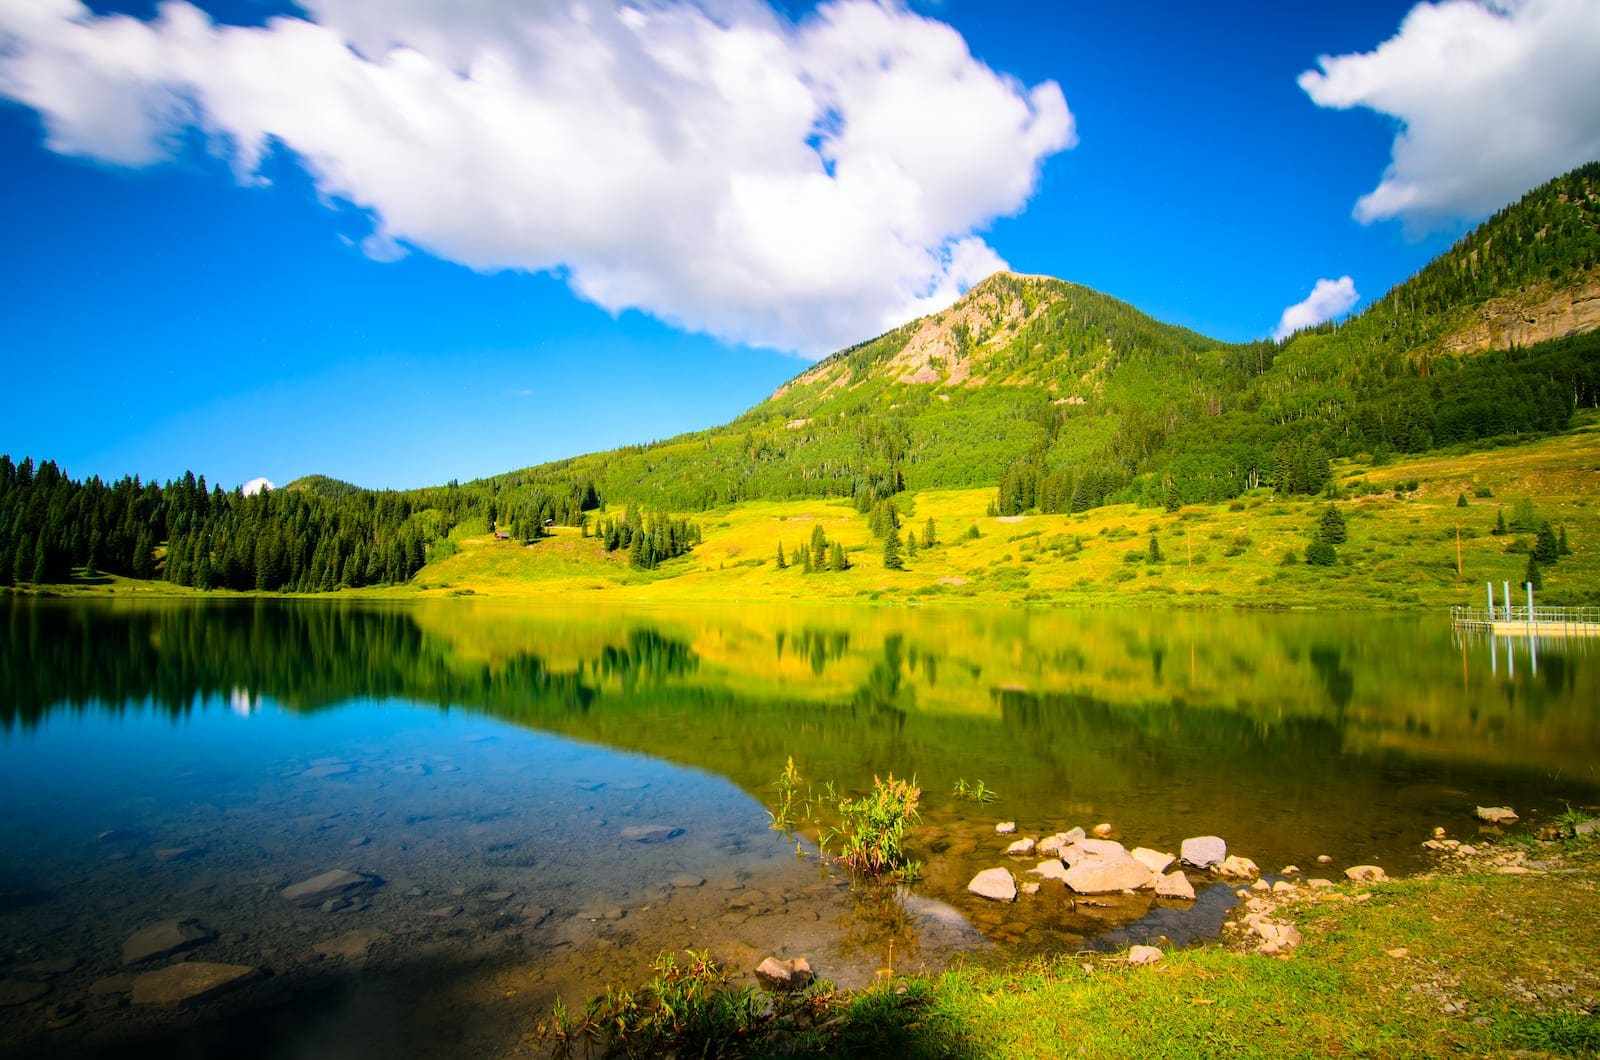 Trout Lake near Telluride Colorado